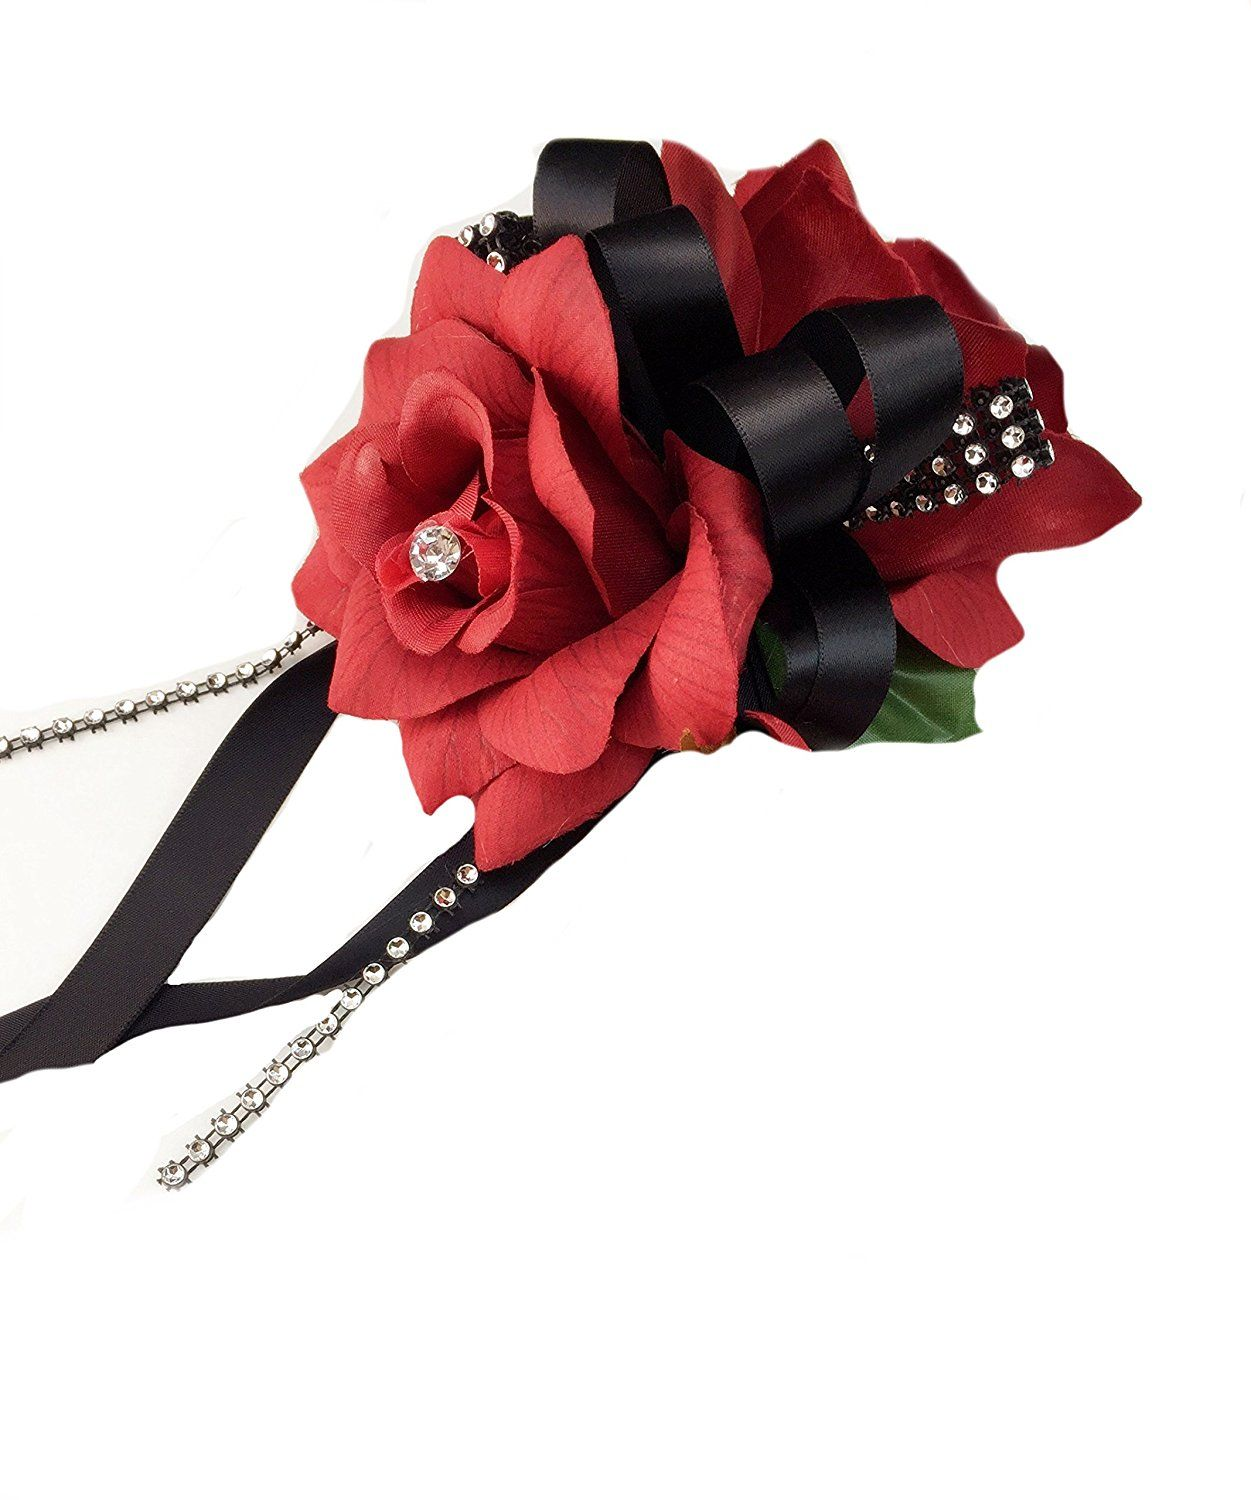 Home decor artificial flowers  Wrist Corsage  Double Red Open Roses  You can find out more